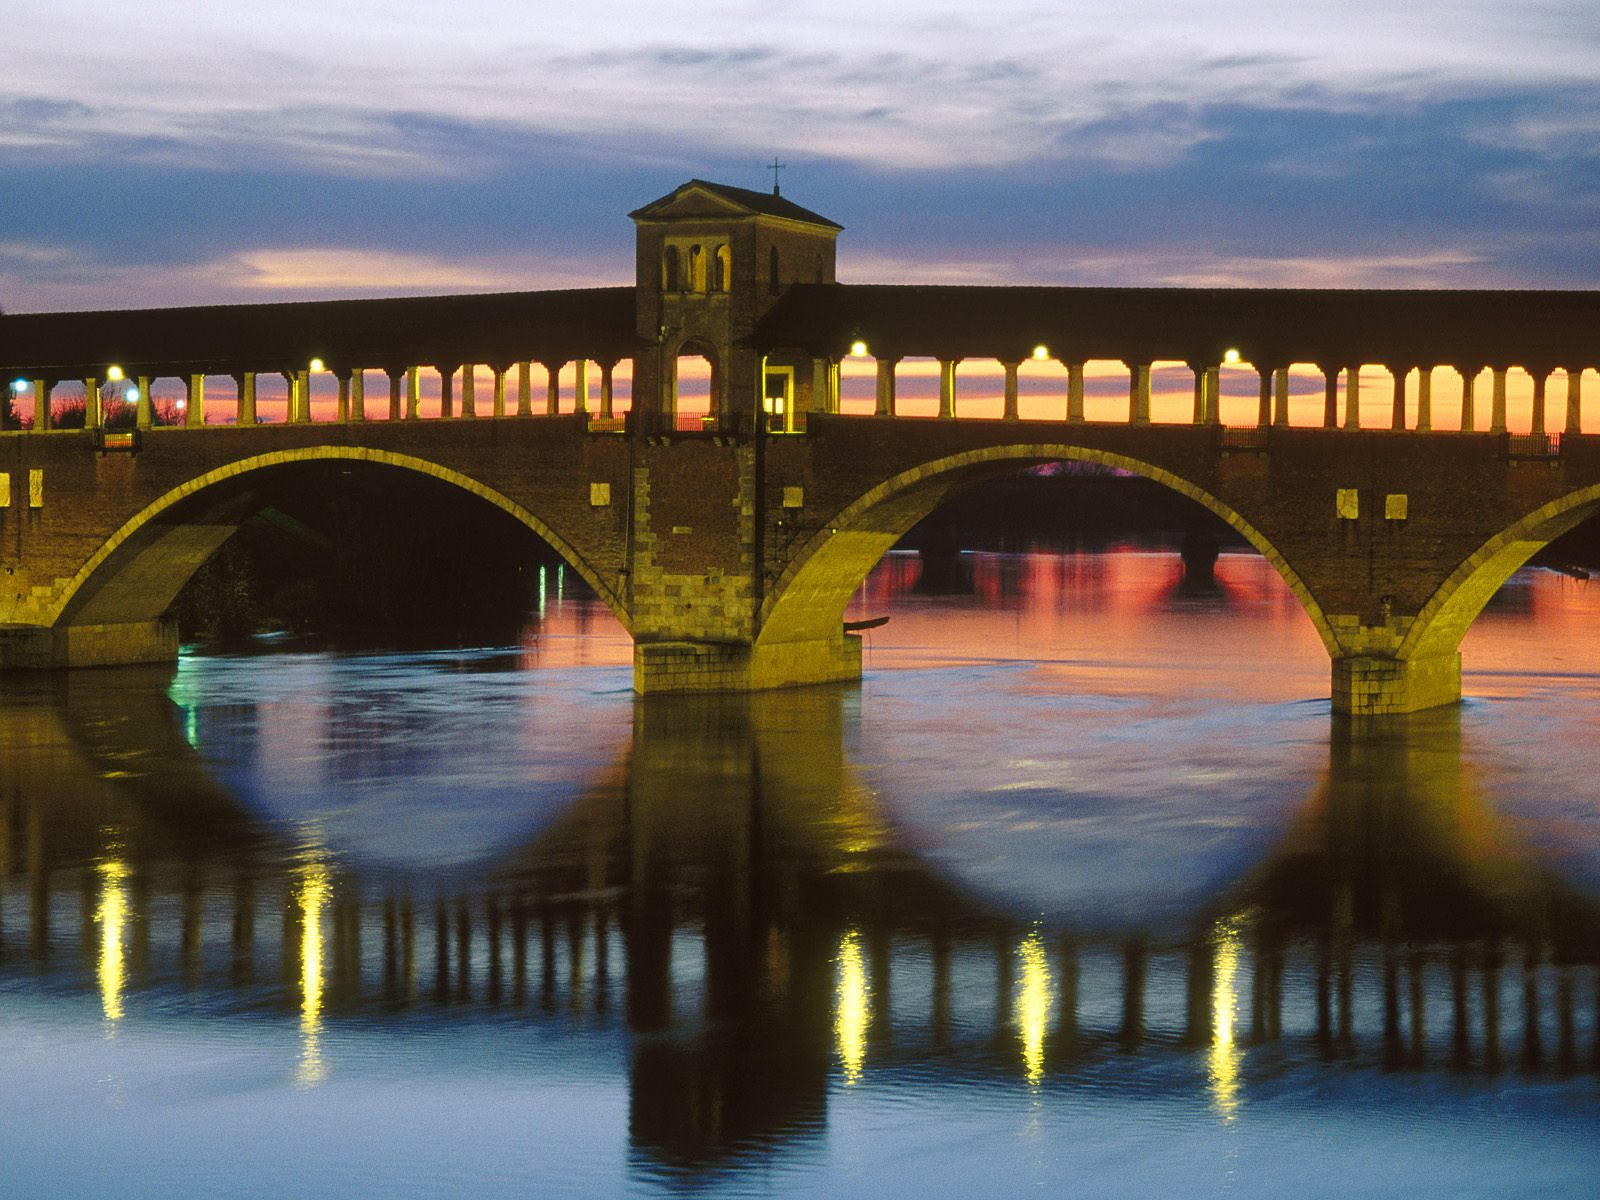 Covered Bridge Over the Ticino River Pavia Italy